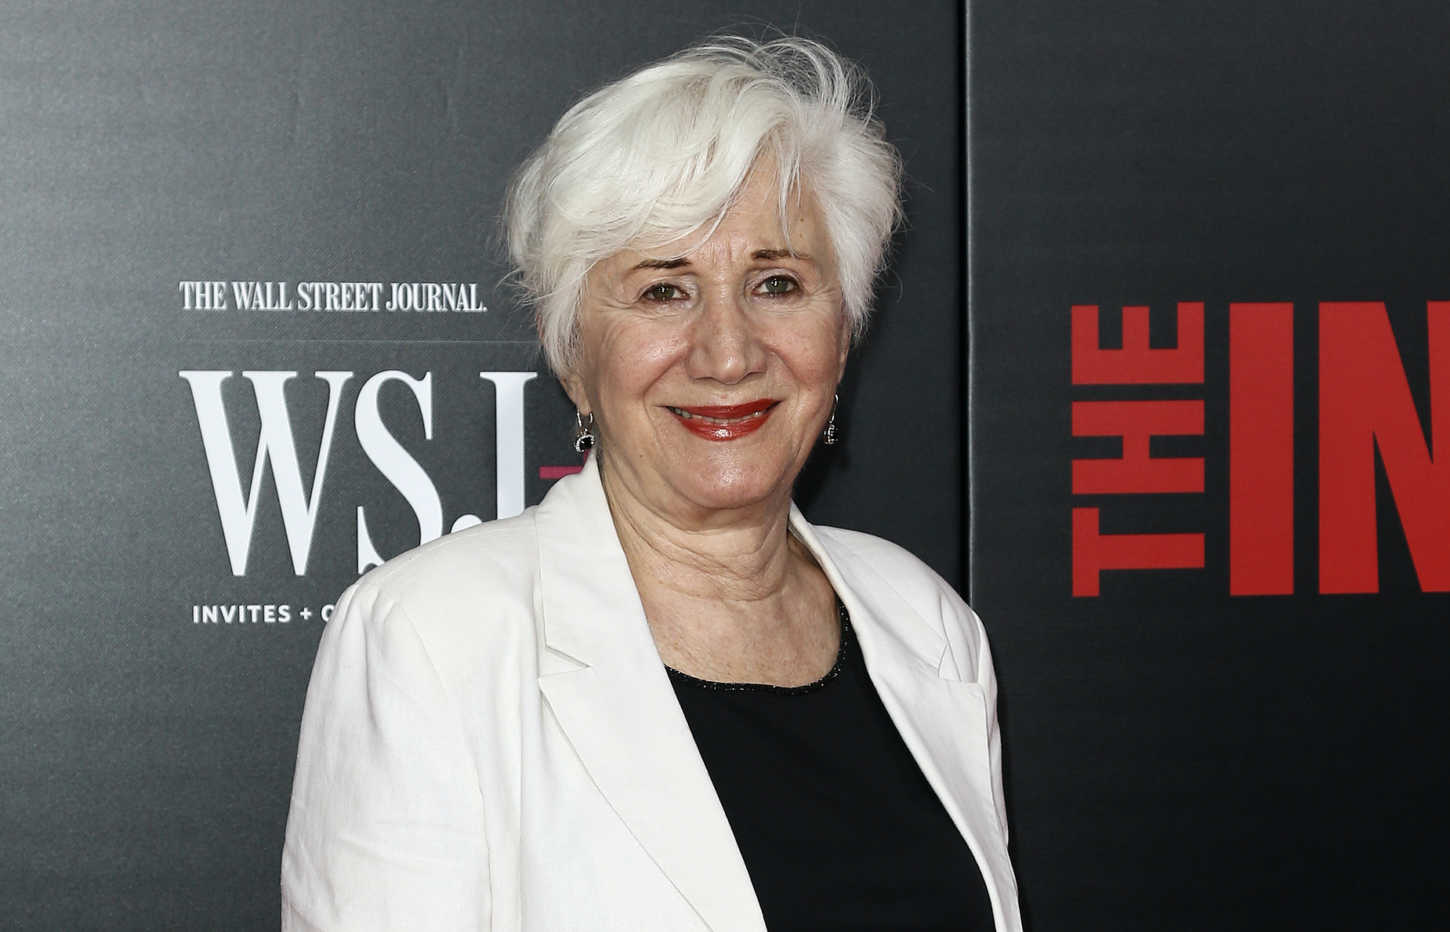 An Ally's LGBTQ+ Legacy Remembered: Olympia Dukakis Fought For the Distribution of This 2011 Lesbian Film